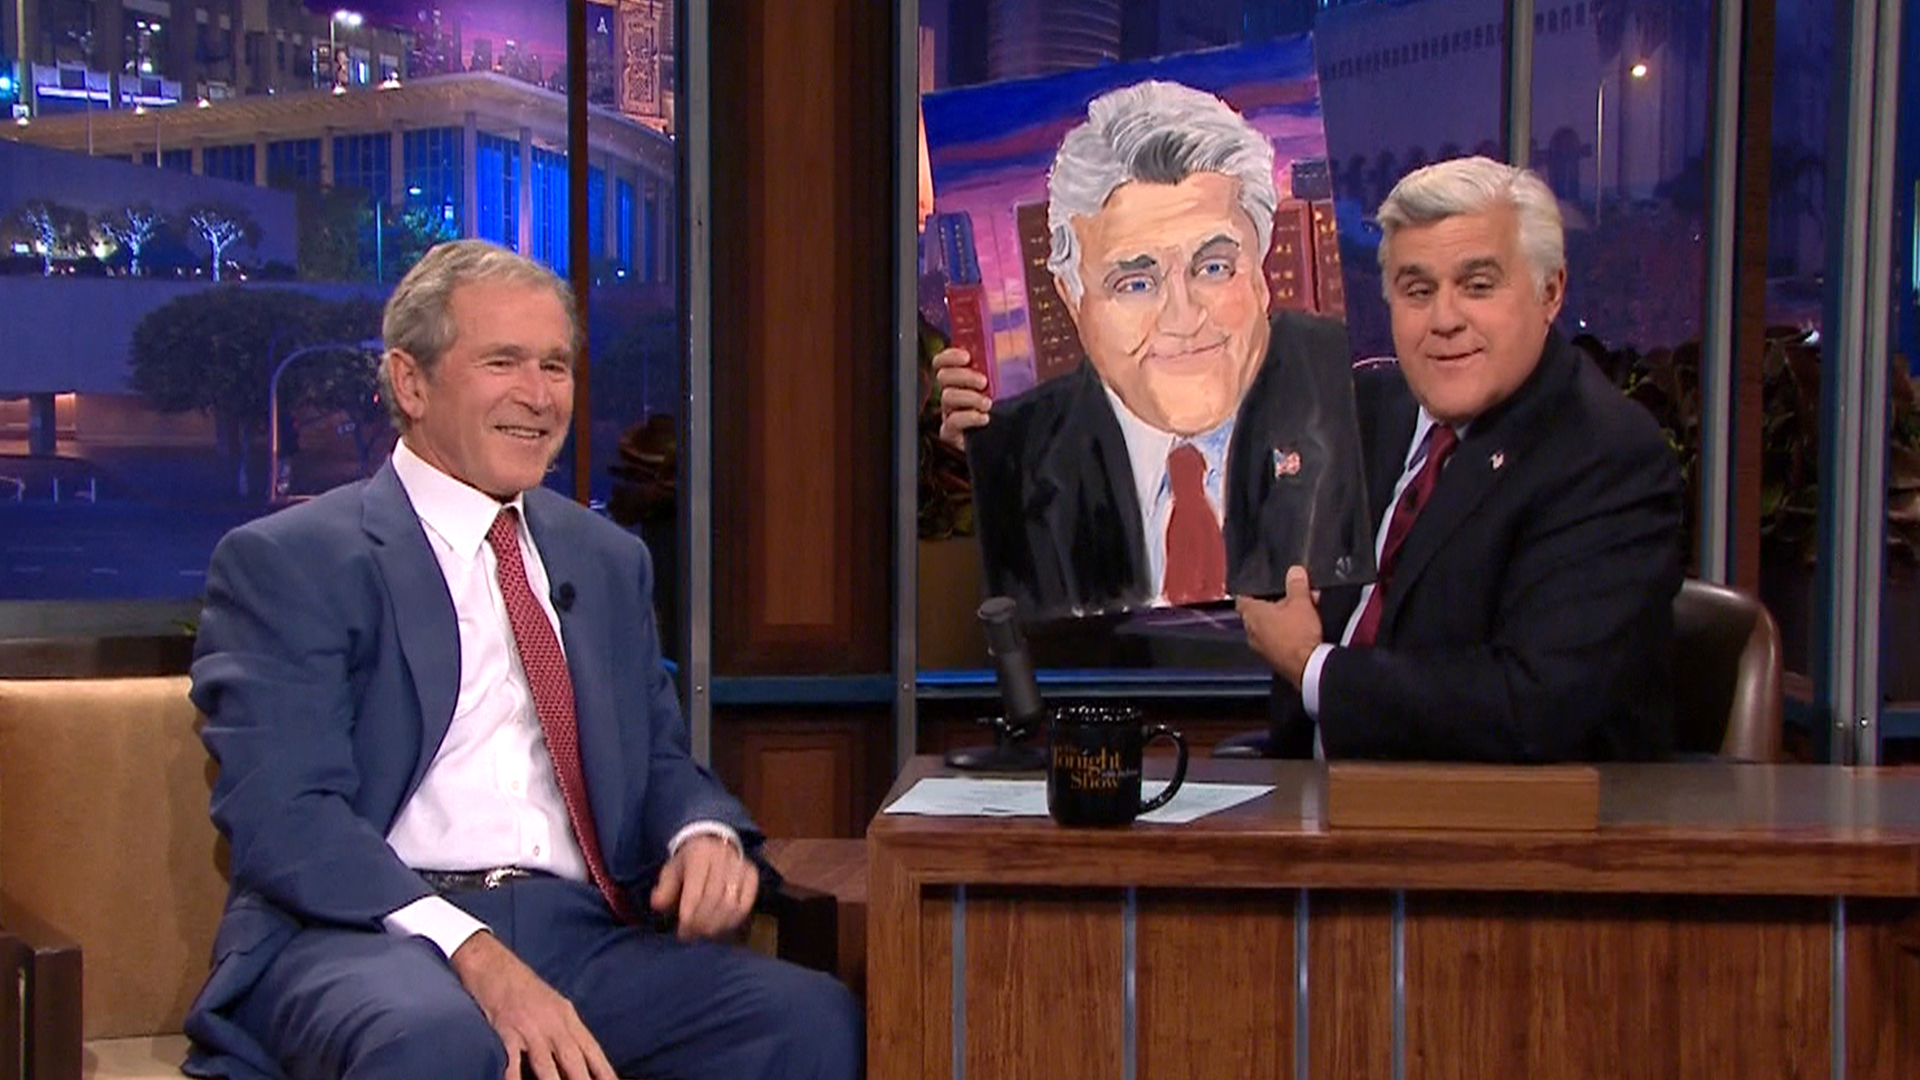 george w bush essay George h w bush this essay george h w bush and other 64,000+ term papers, college essay examples and free essays are available now on reviewessayscom.